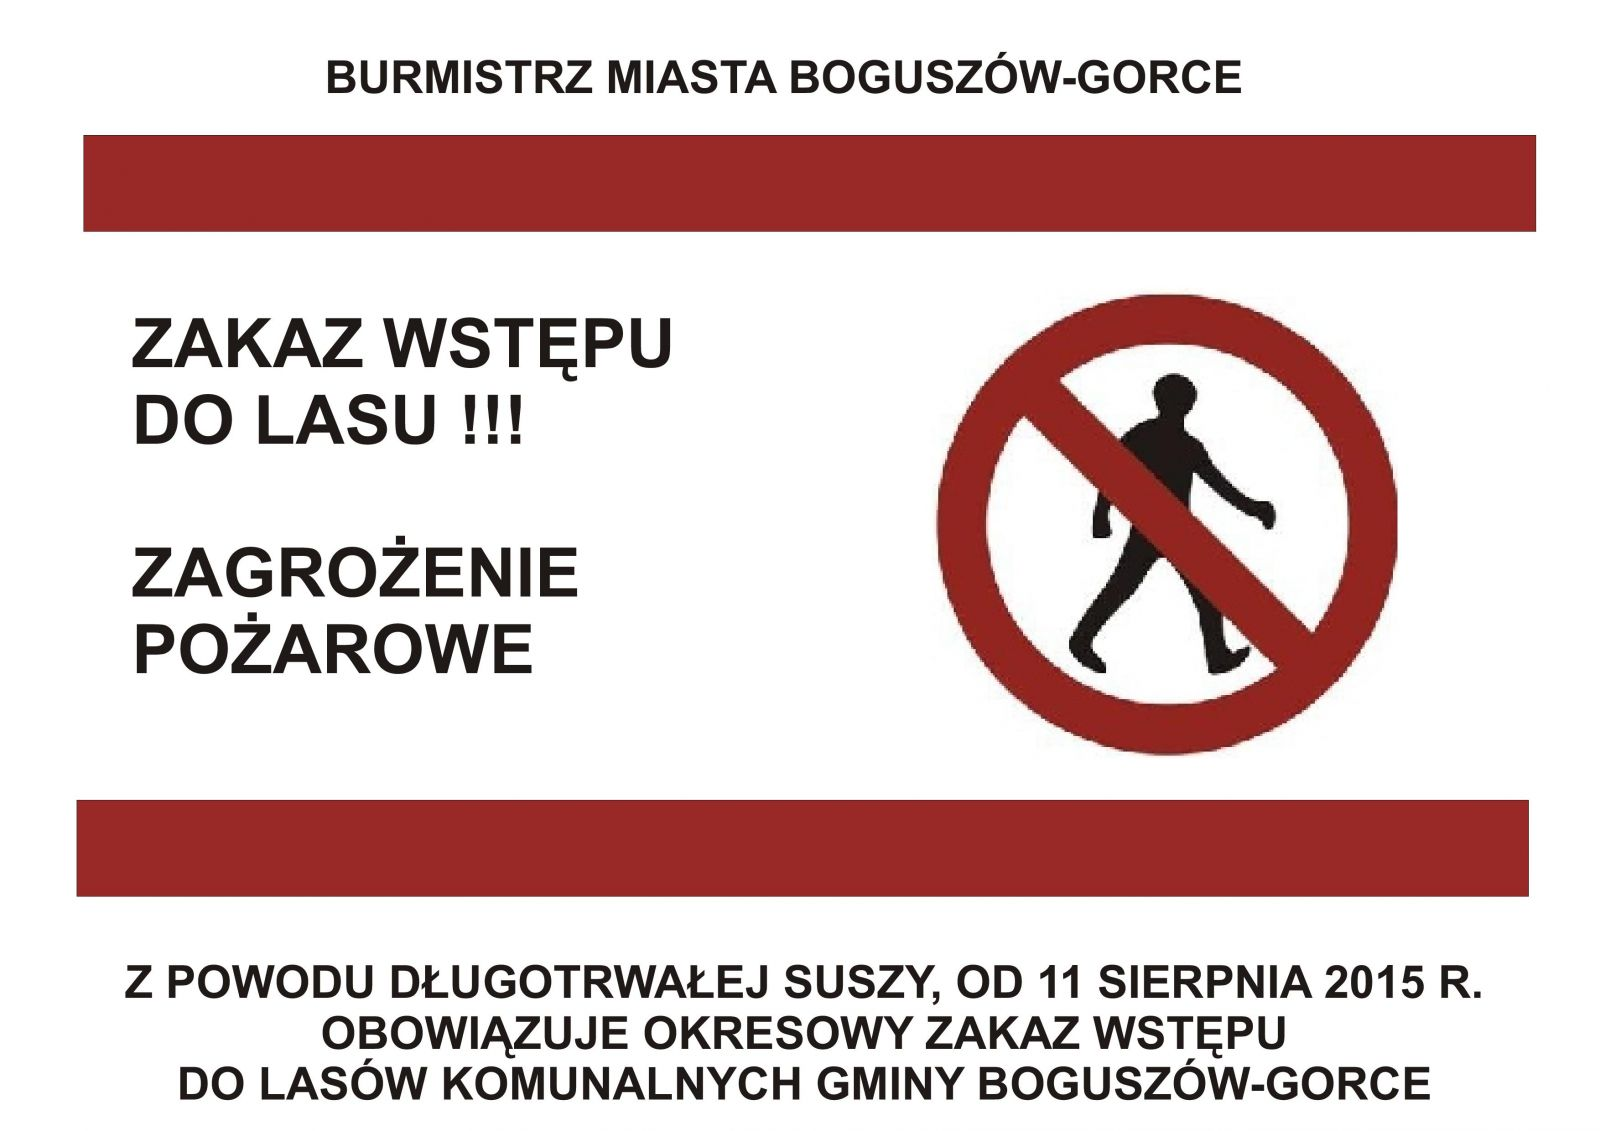 ZAKAZ WSTĘPU DO LASU !!!